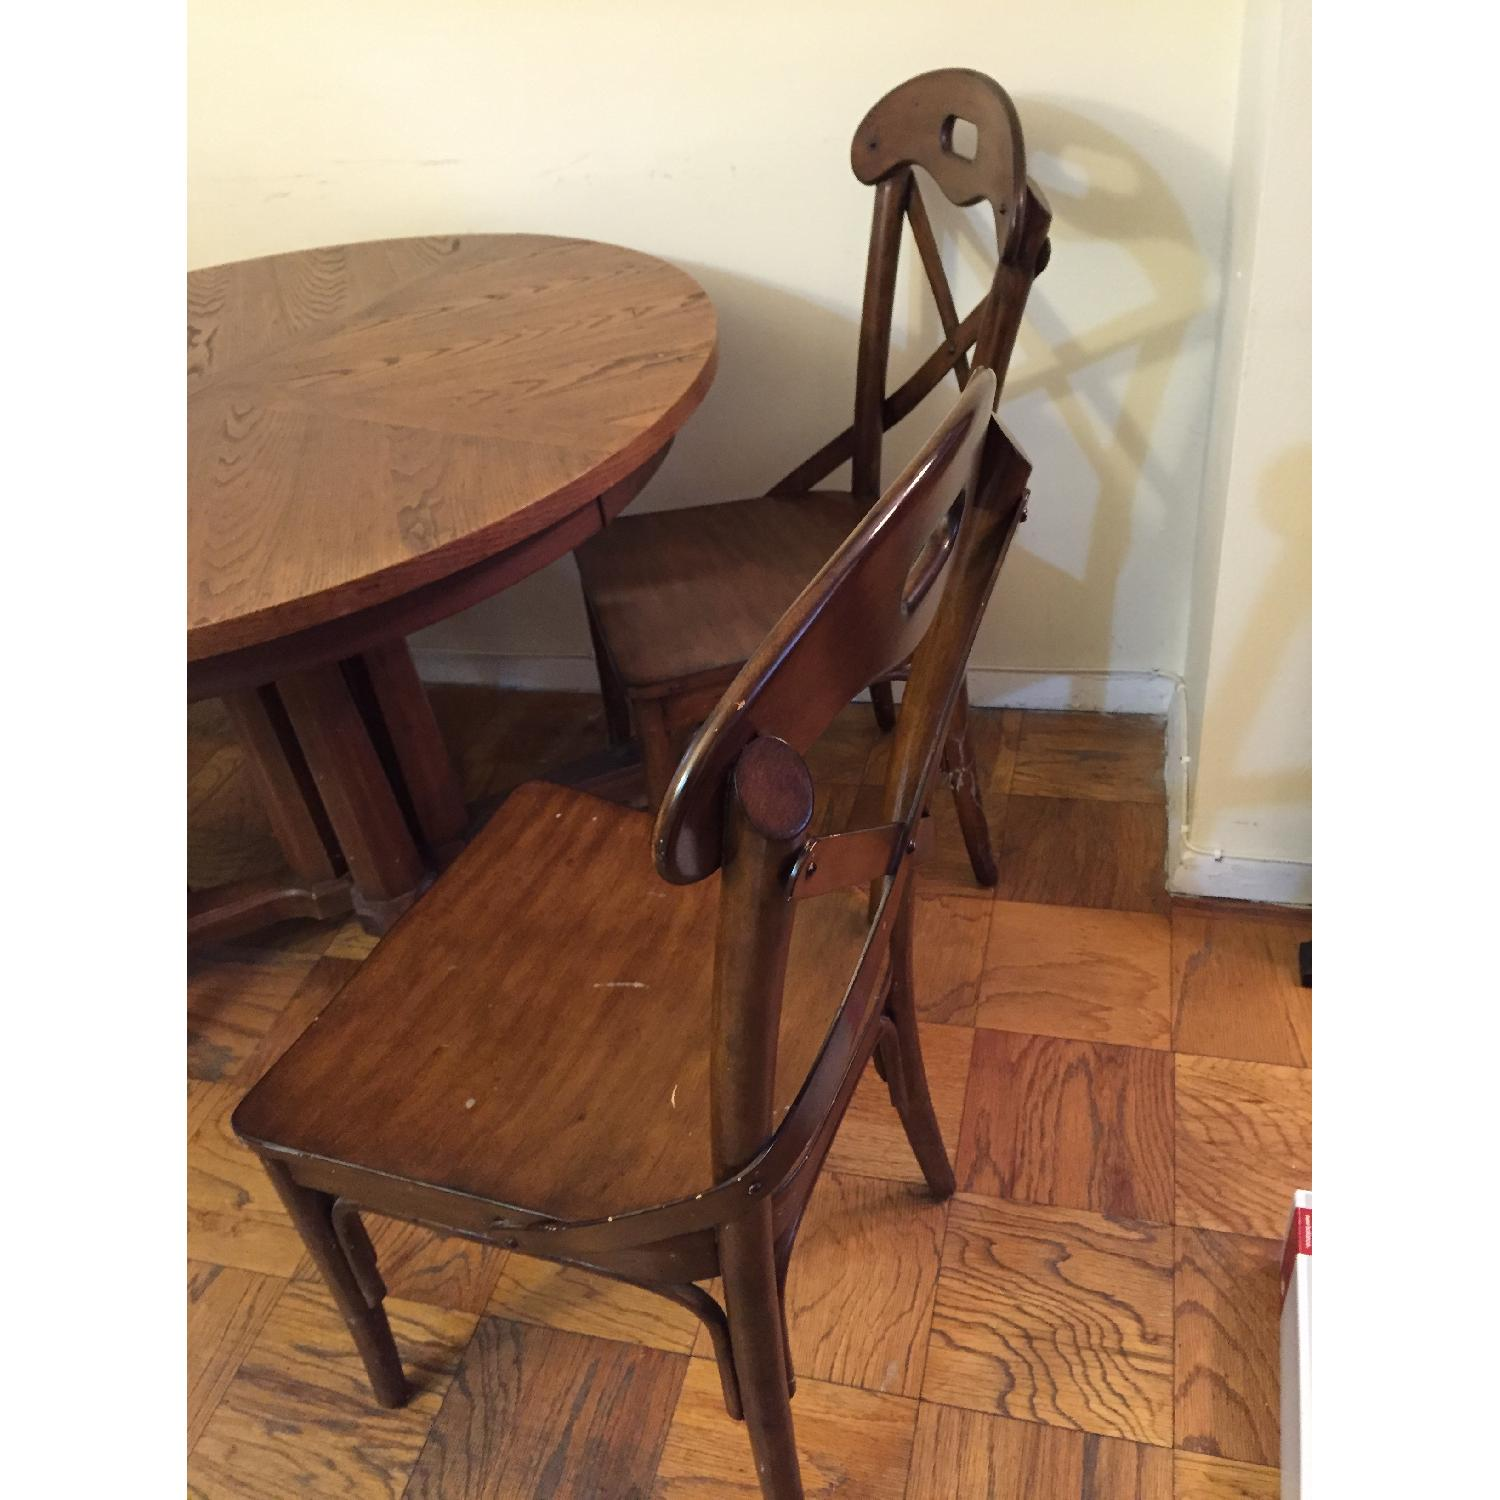 Pier 1 imports Wood Marchella Dining Room Chairs - image-2